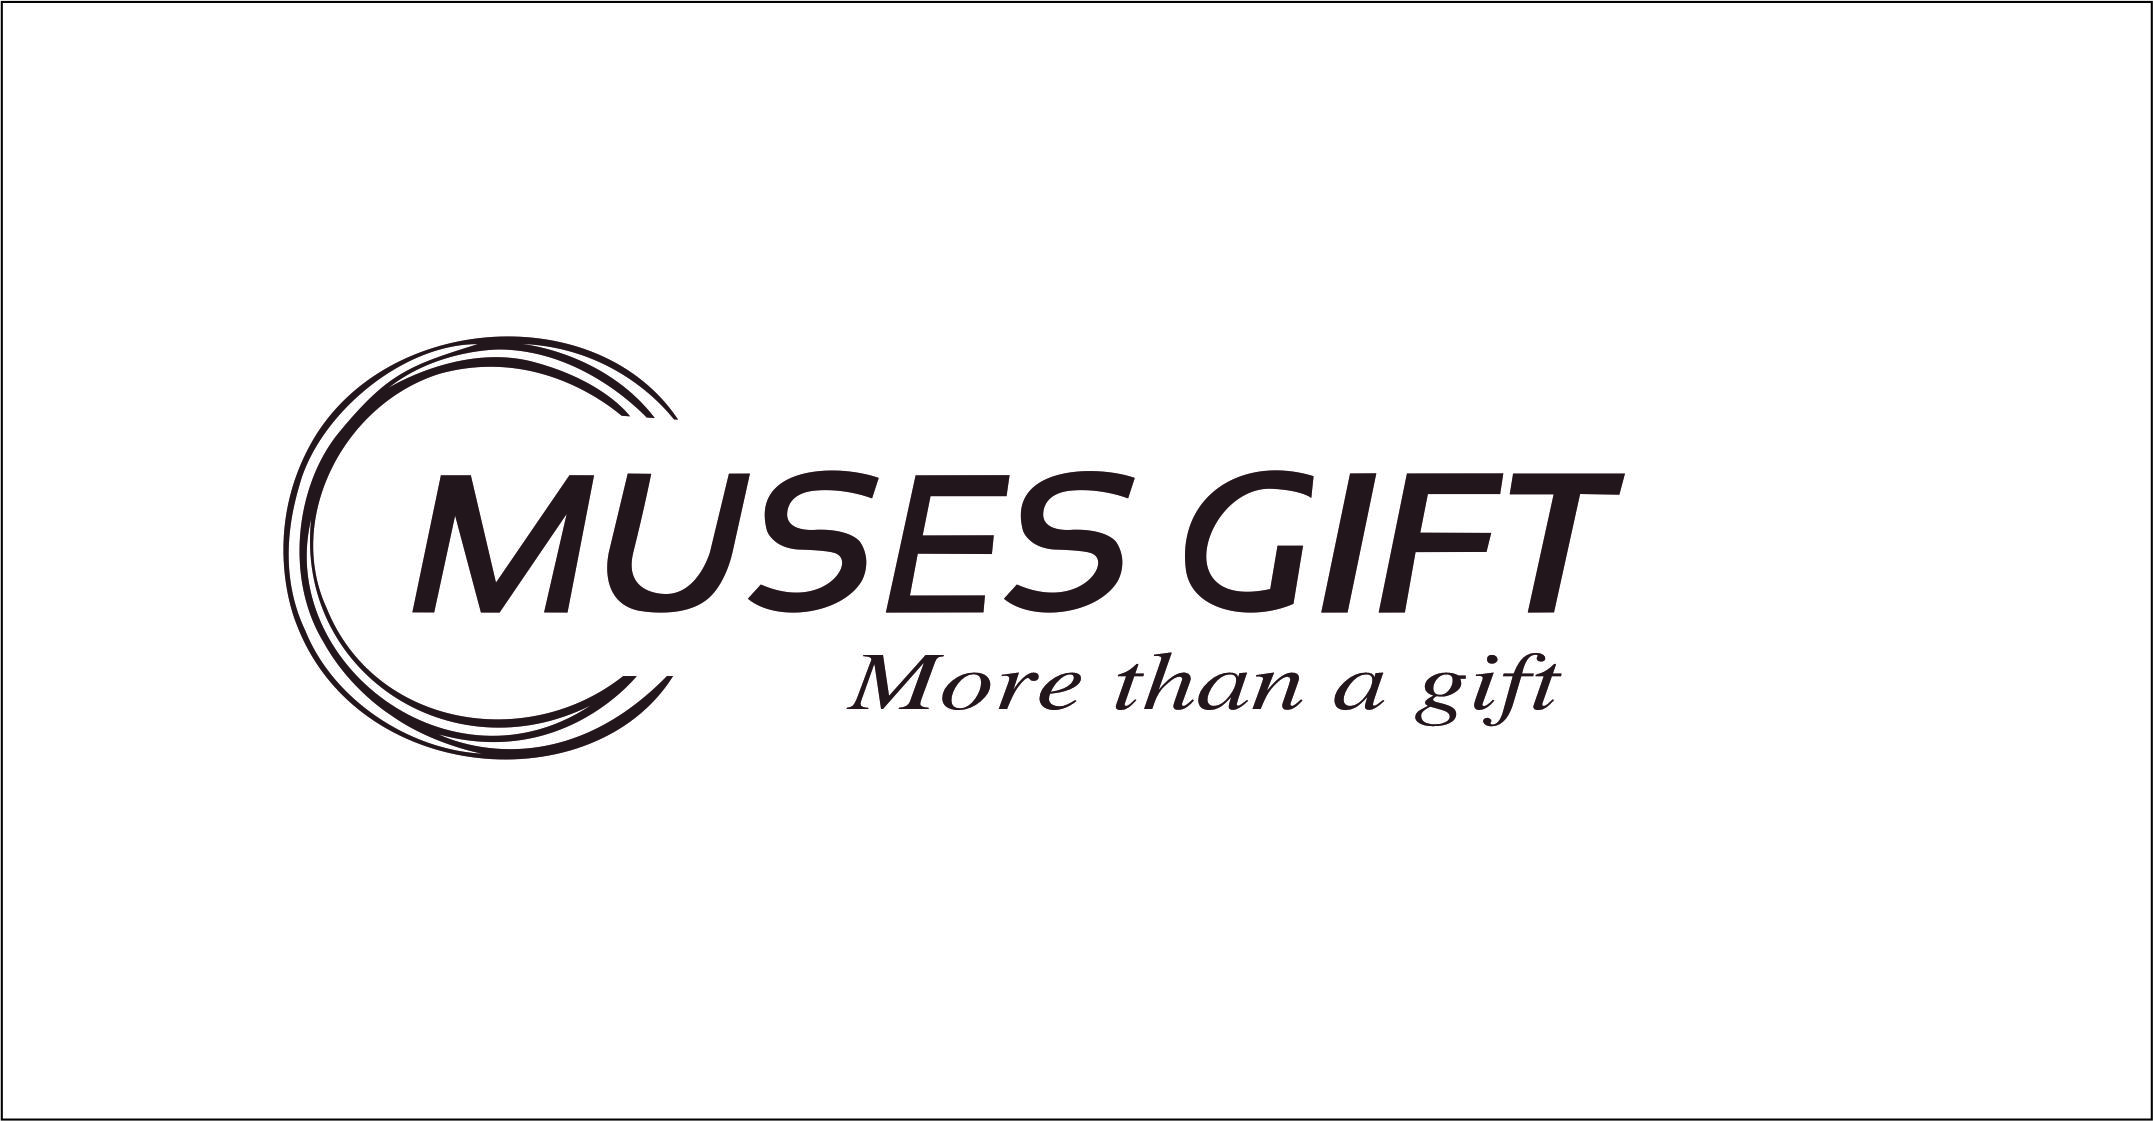 Muses Gift